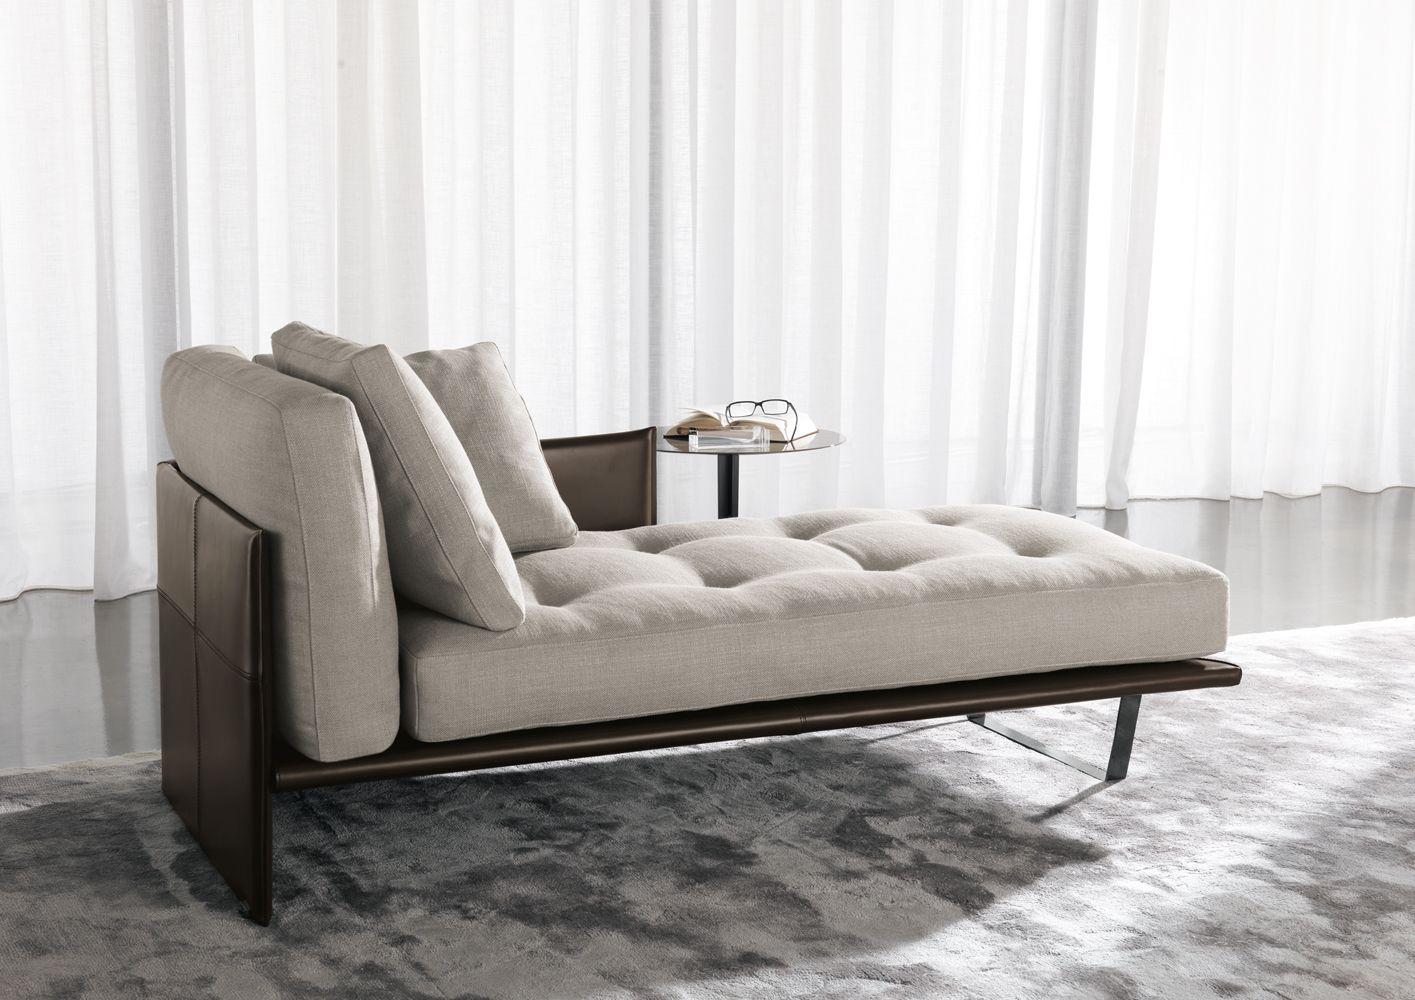 Luggage Chaise Lounge Designed By Rodolfo Dordoni Furniture Chaise Lounge Bench Furniture